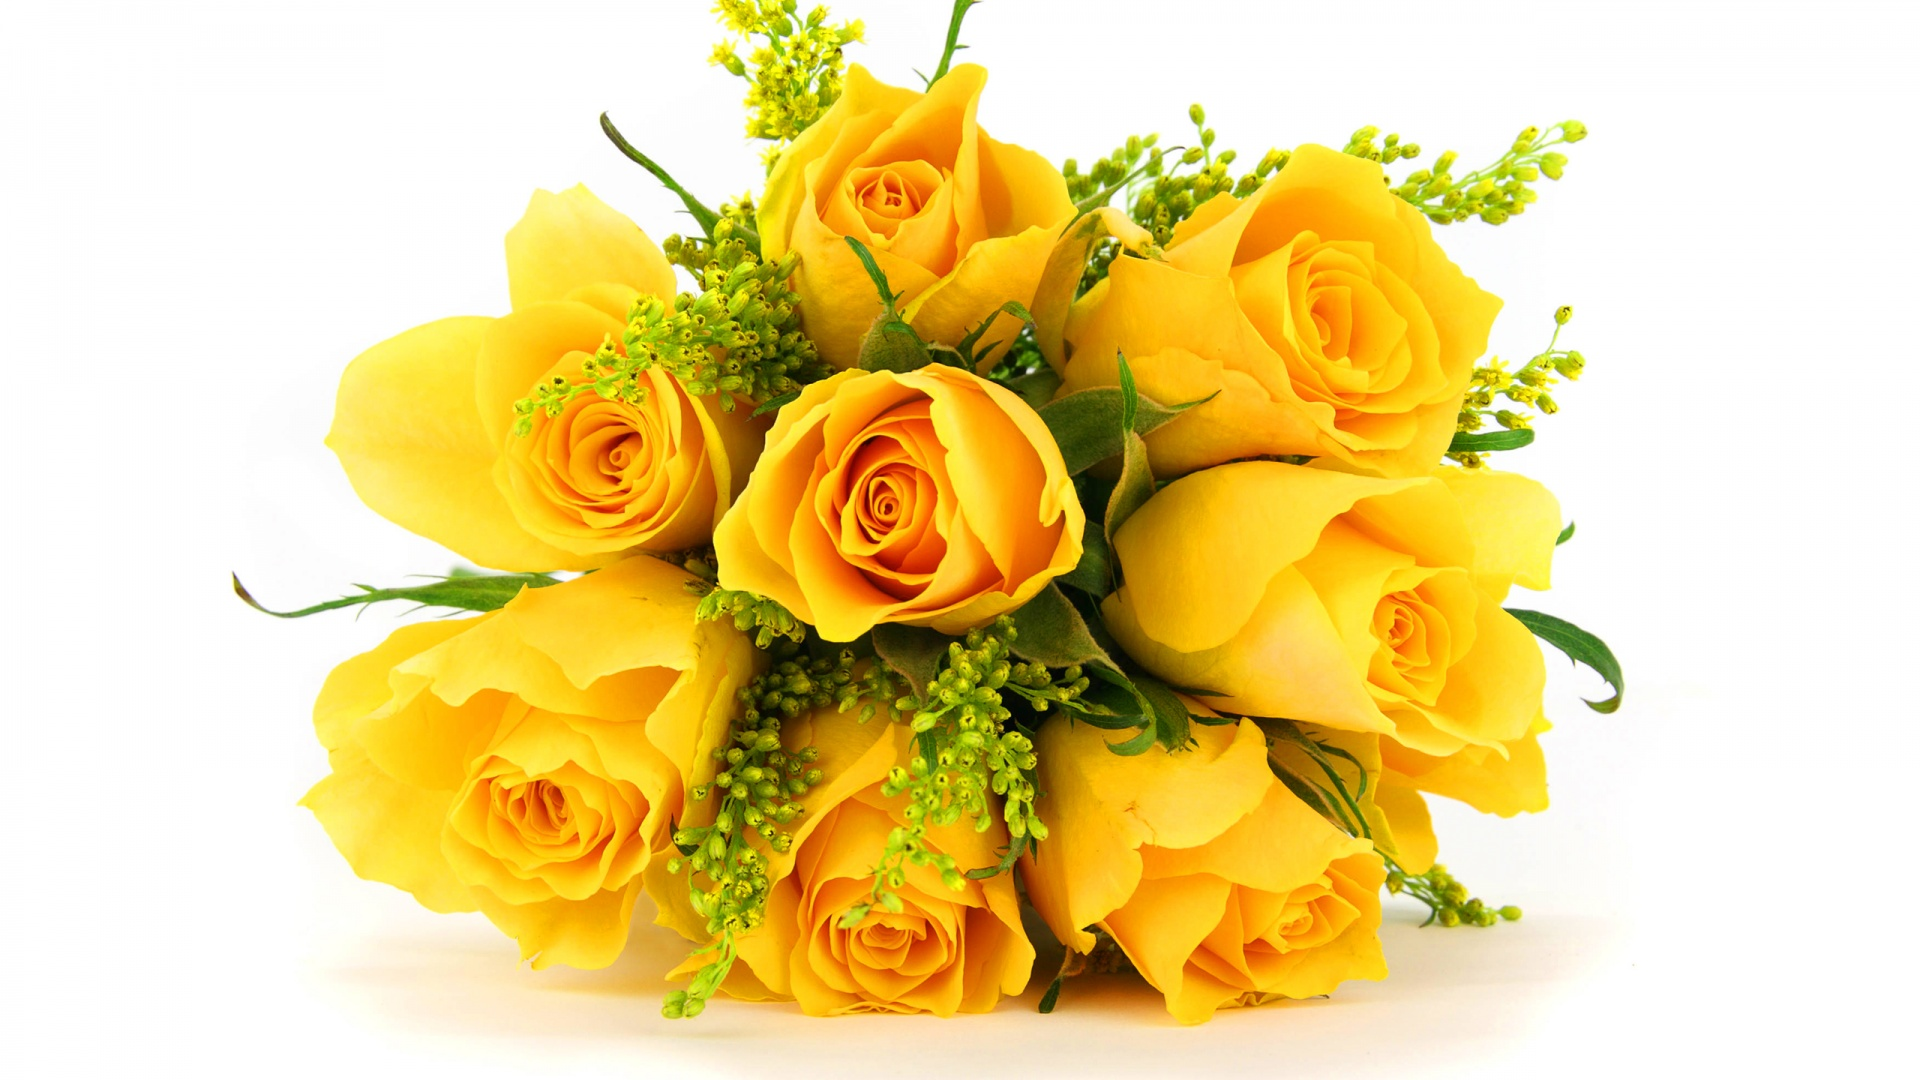 Yellow Roses Wallpapers Wallpaper High Definition High Quality